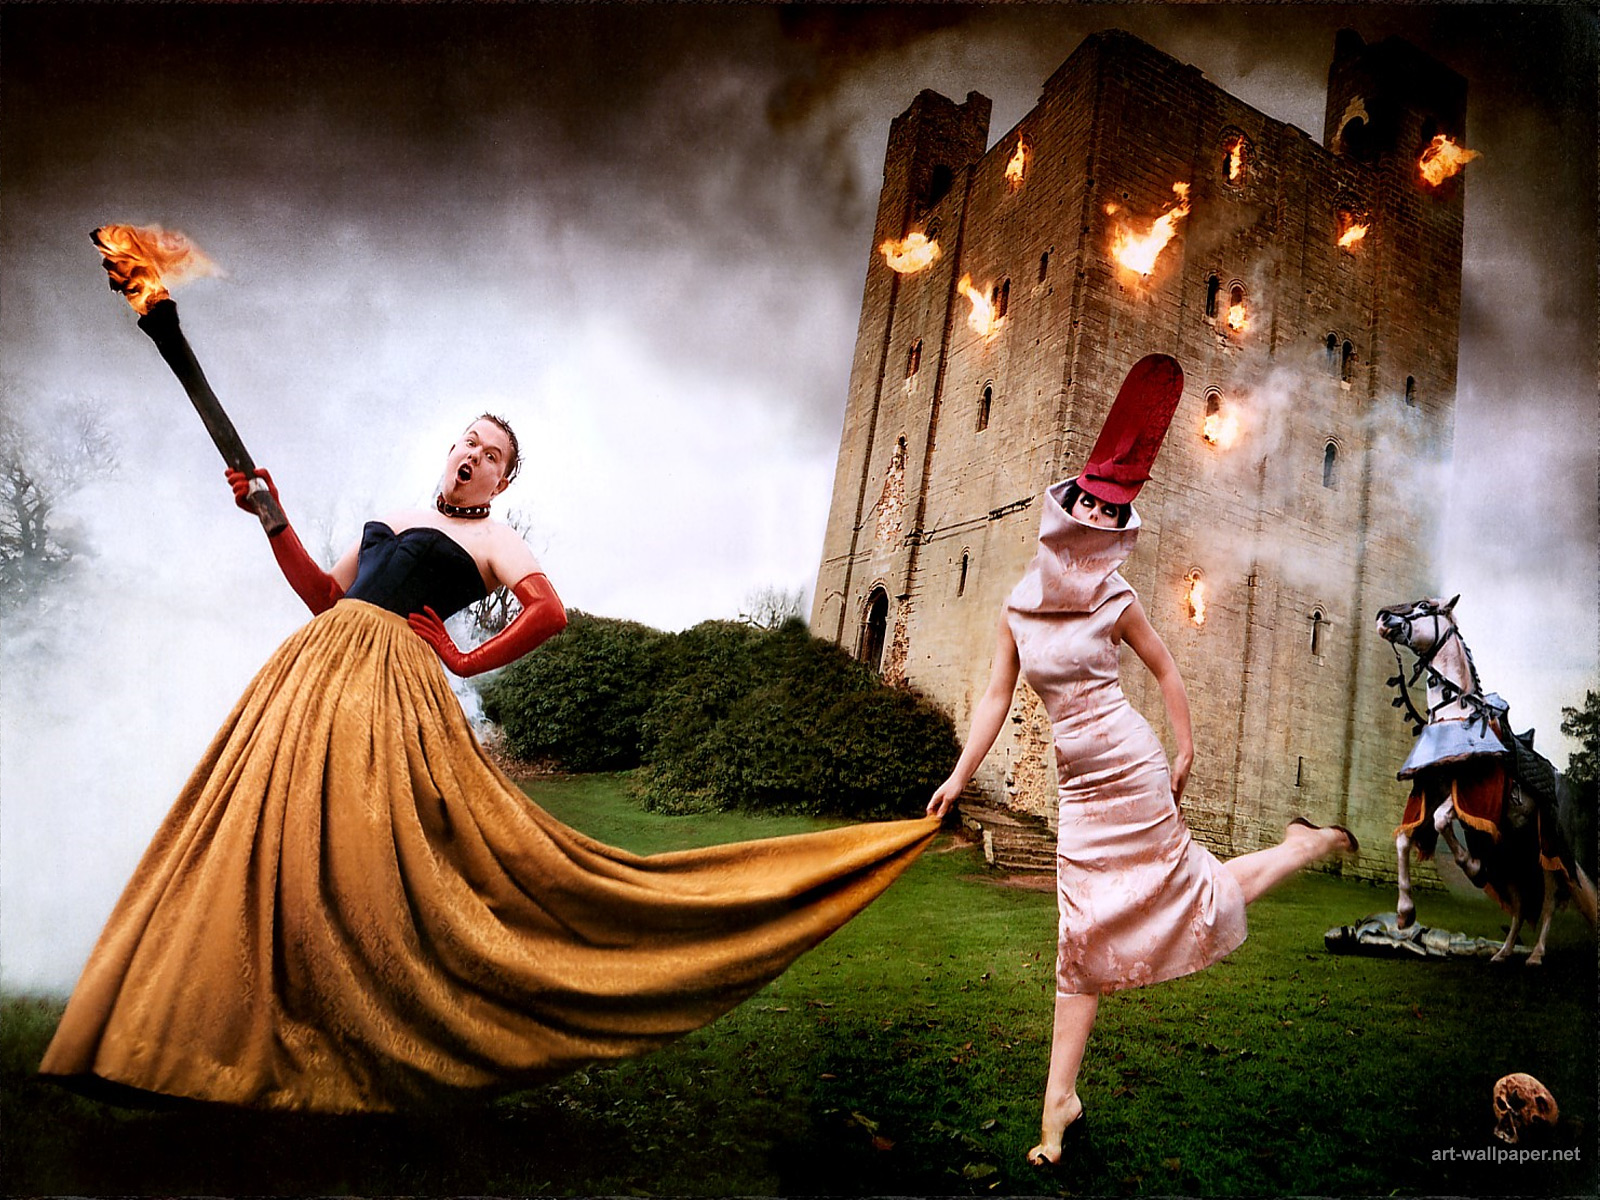 david-lachapelle-photos